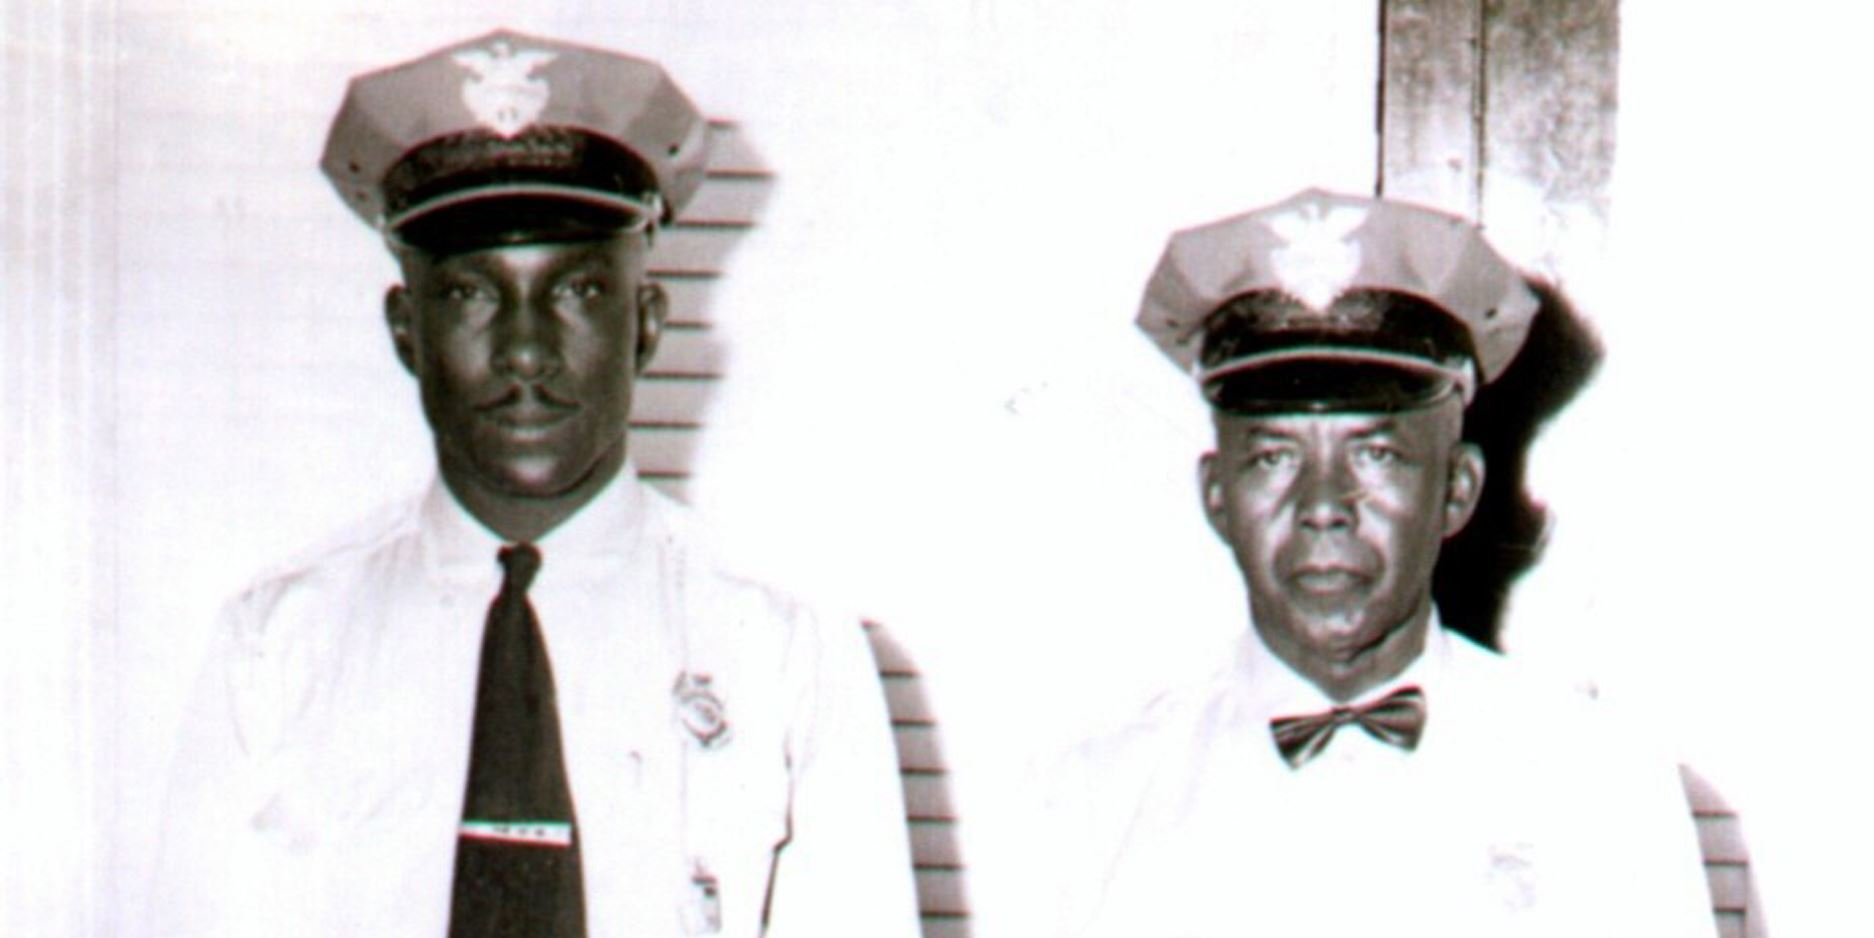 1949 Earnest Smith and Mack Sanders